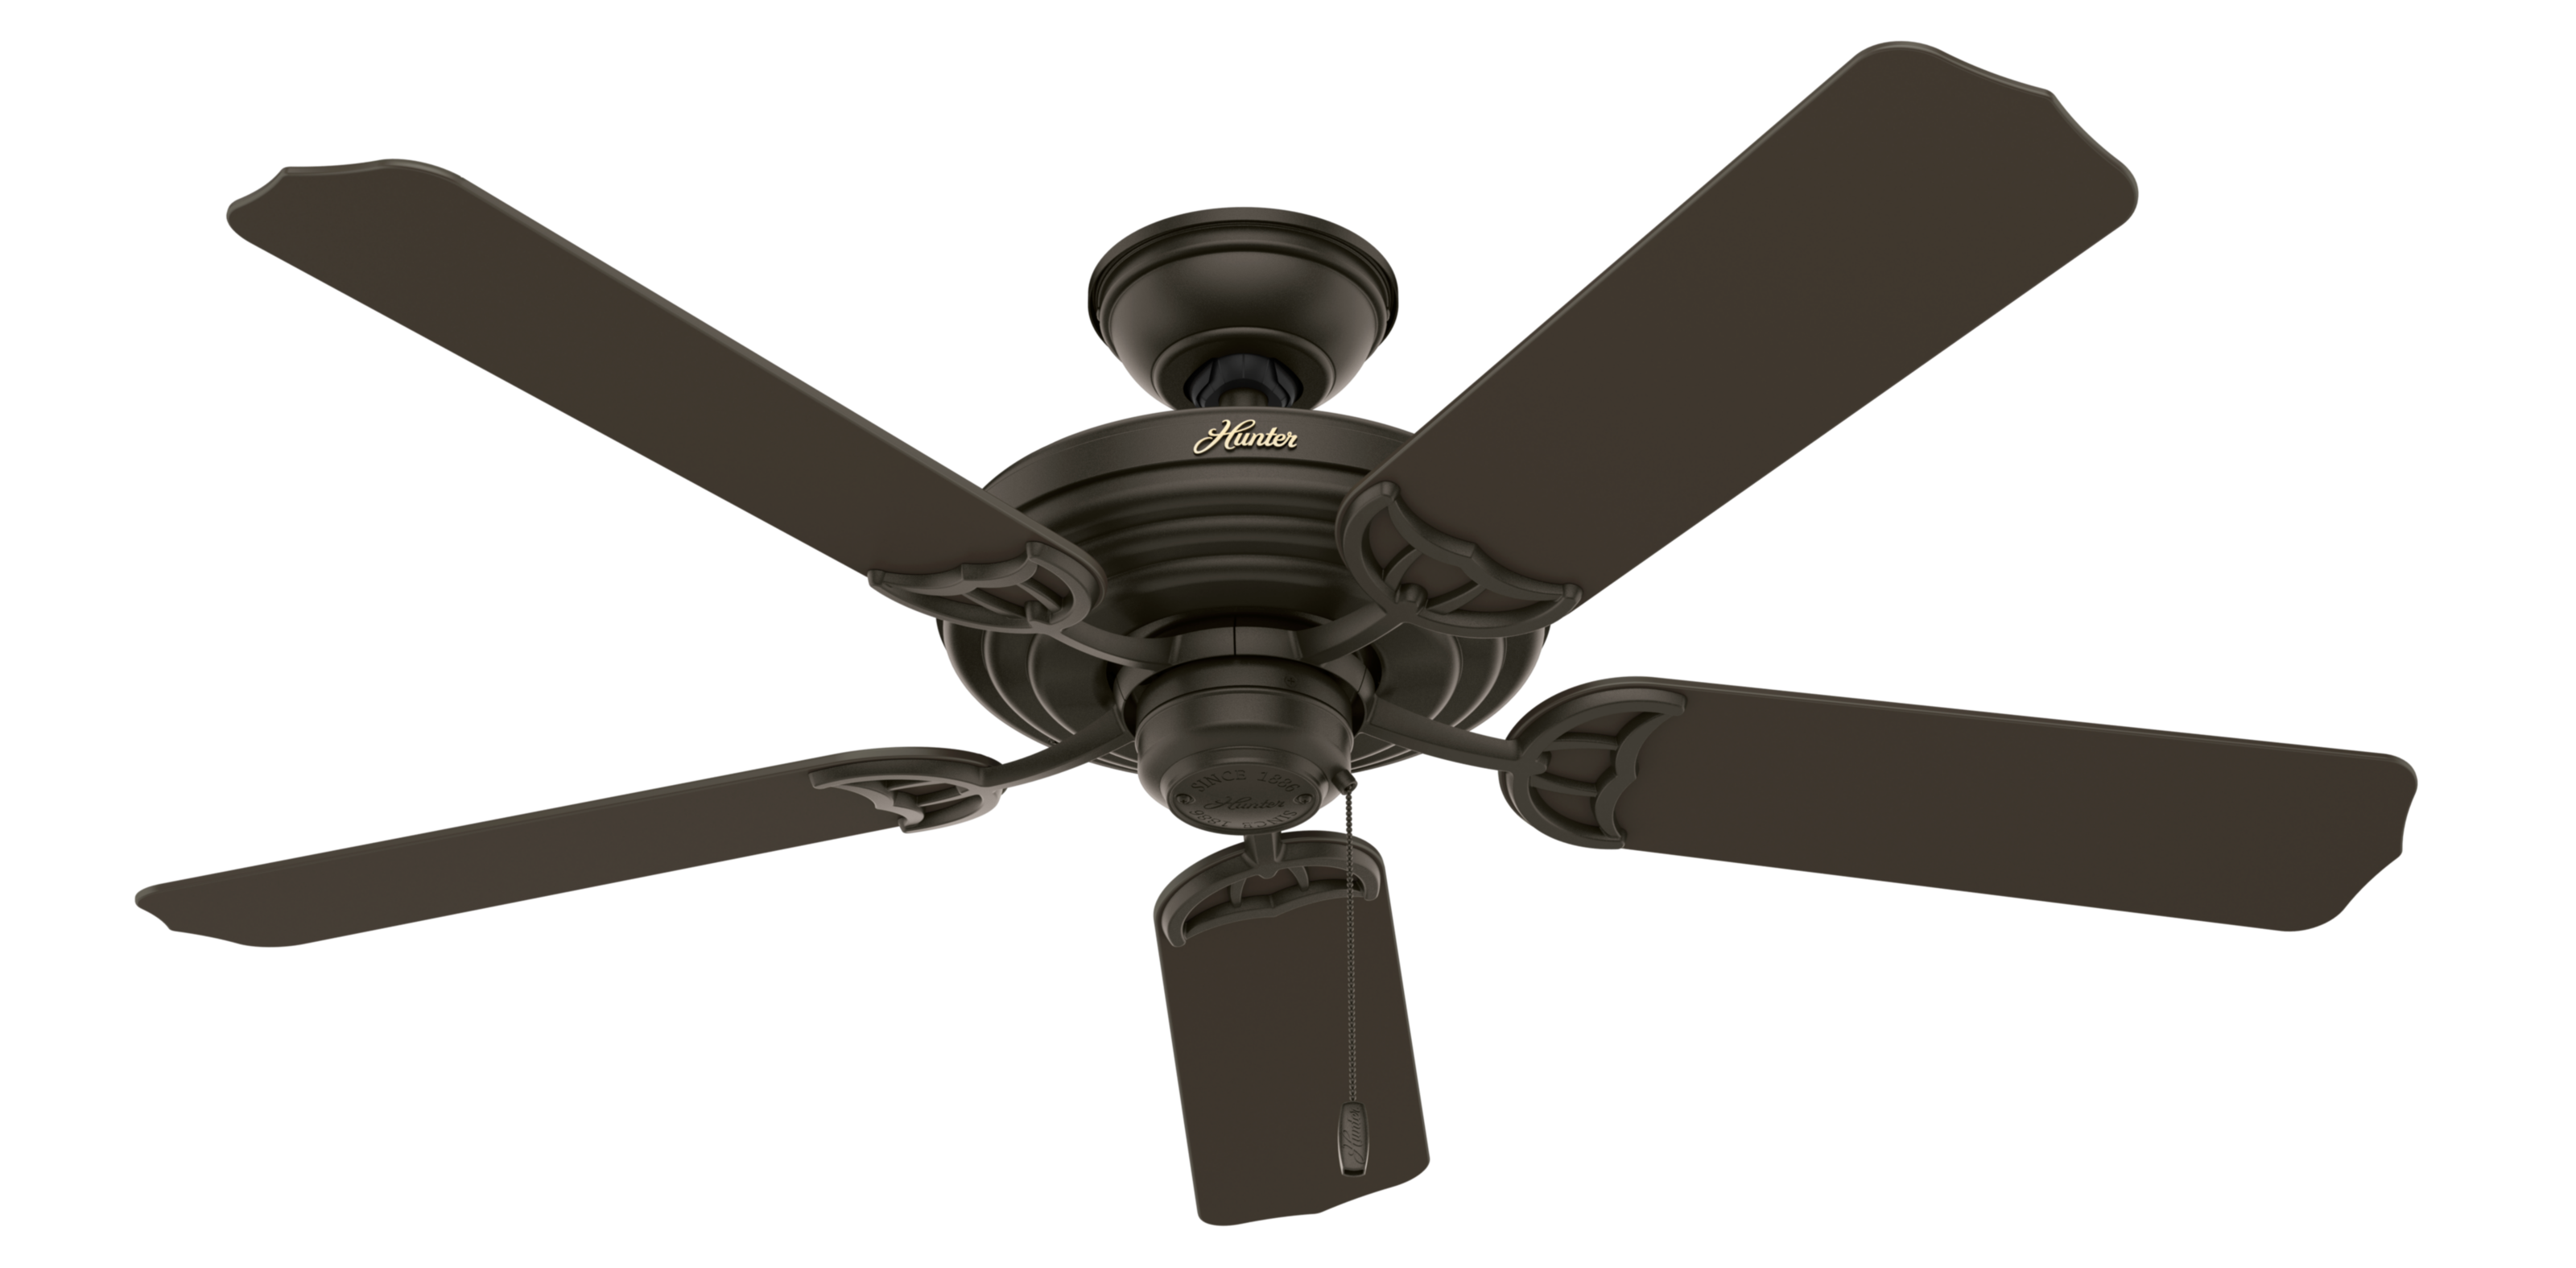 Hunter Sea Air 53061 Ceiling Fan, 5498 cfm, 5 Blades, New Bronze Finish